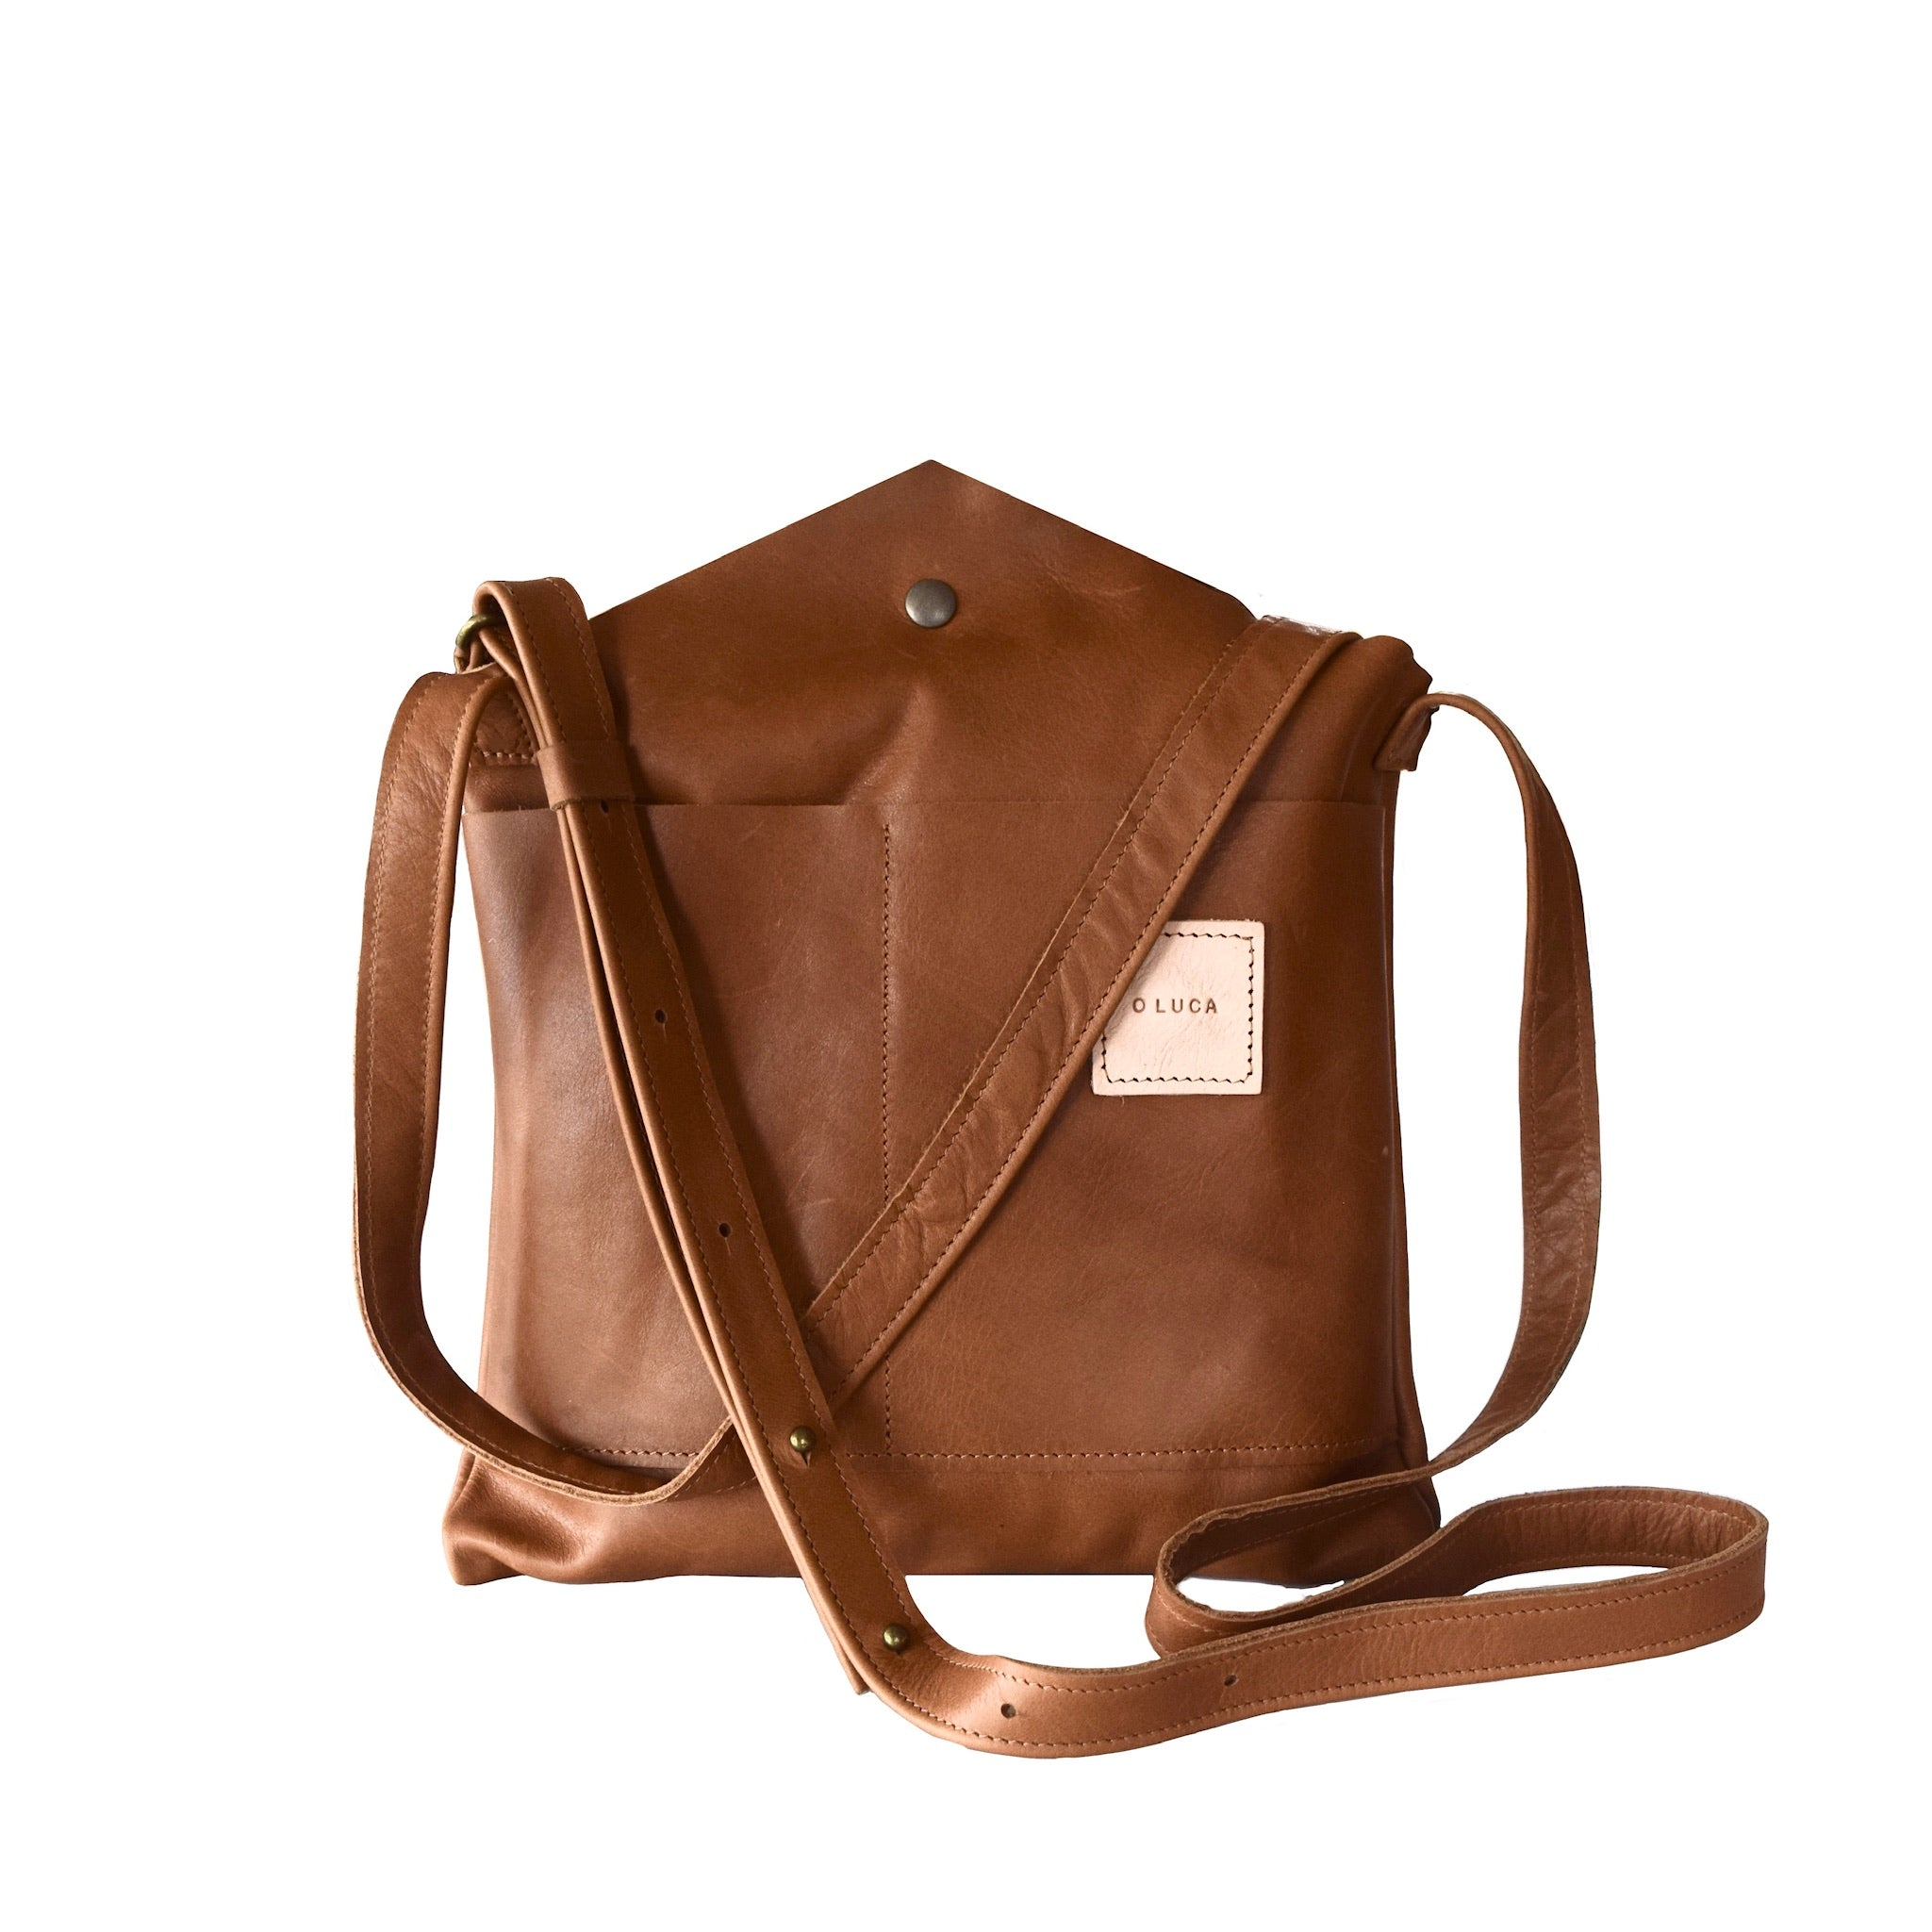 O RIVIERA - leather crossbody handbag with shoulder strap - Caramel